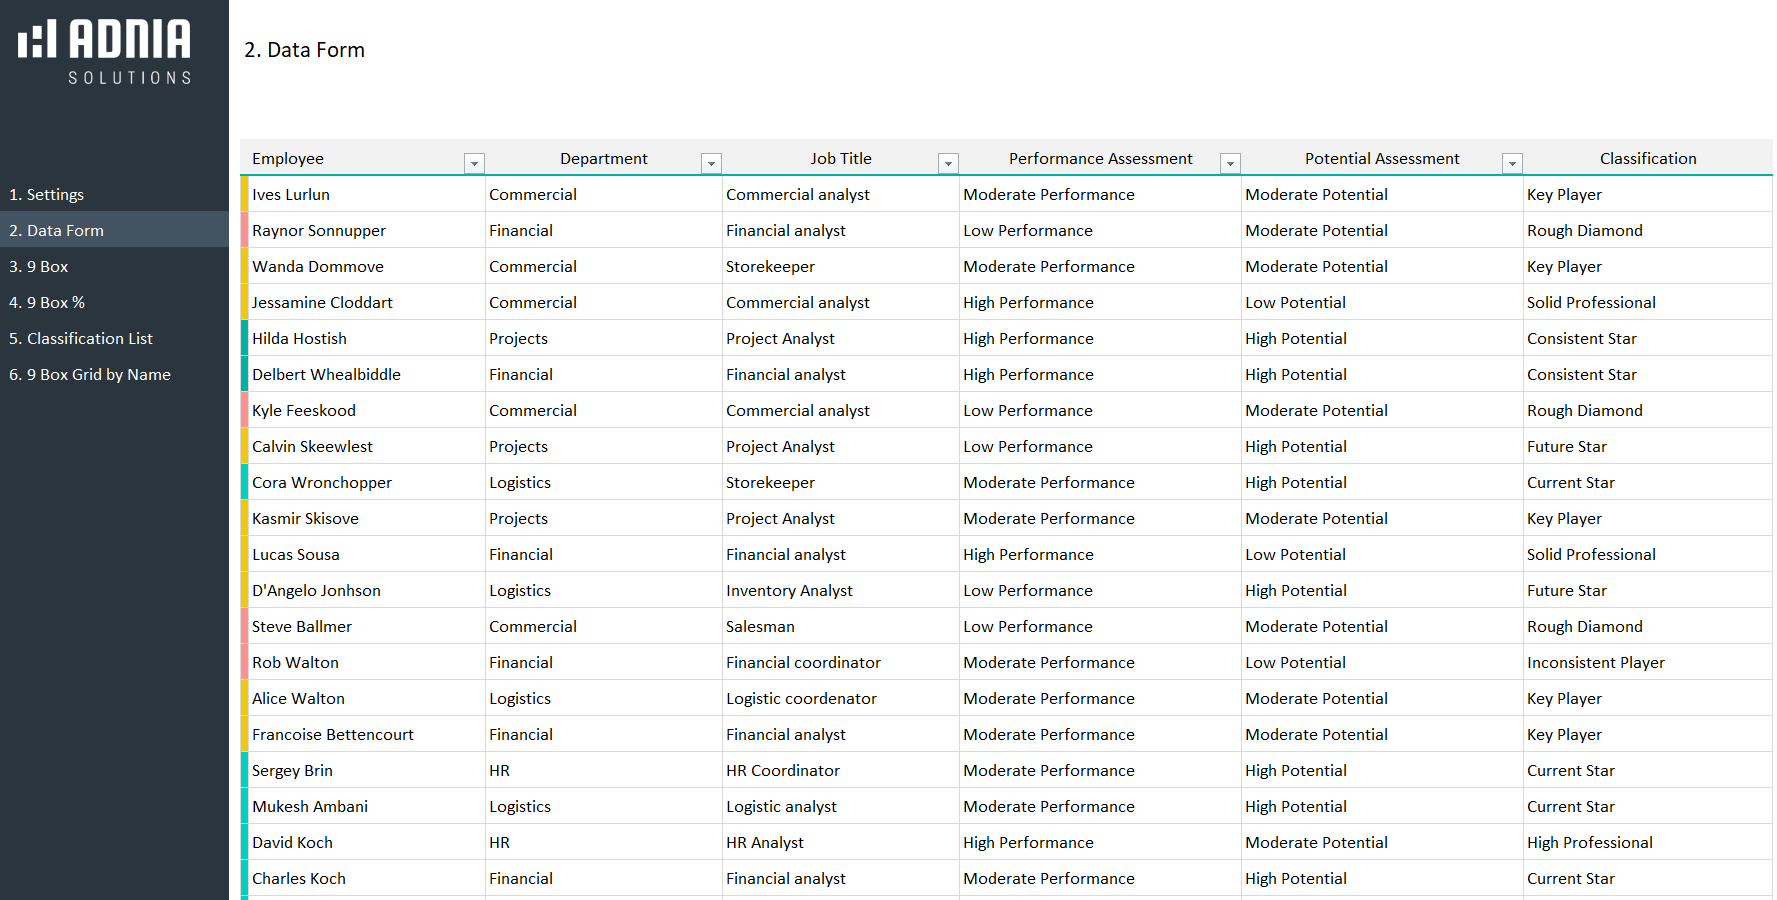 9 Box Grid Talent Management Template | Adnia Solutions in Talent Inventory Template